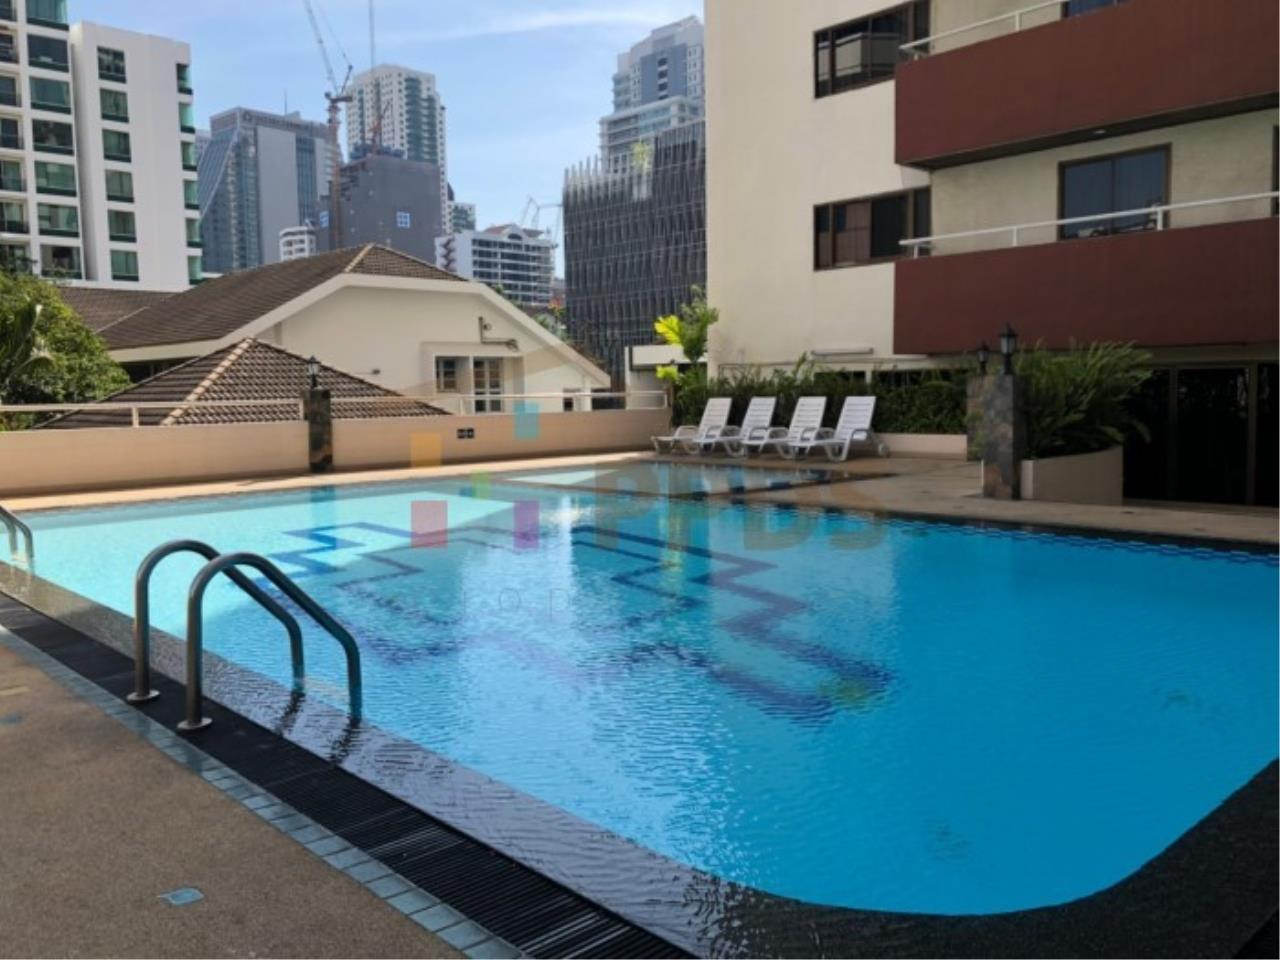 Propodyssey Agency's Sell 2 beds condo 175 sq.m with maid area at Prestige Tower Sukhumvit 23 13